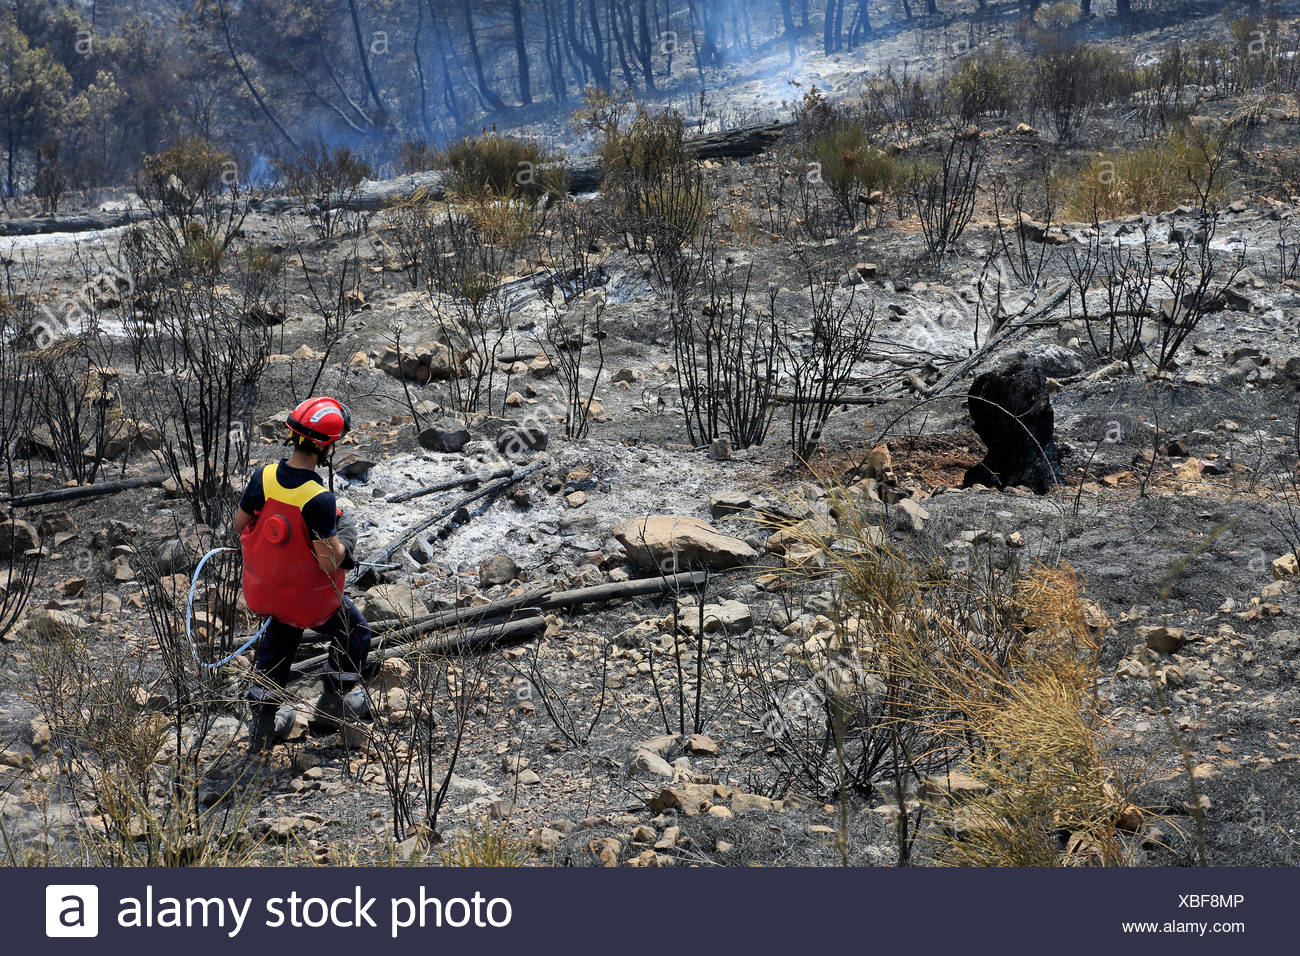 Firefighter, fighting fire, forest fires in Castellar, Maritime Alps, Provence-Alpes-Côte d'Azur, France, - Stock Image